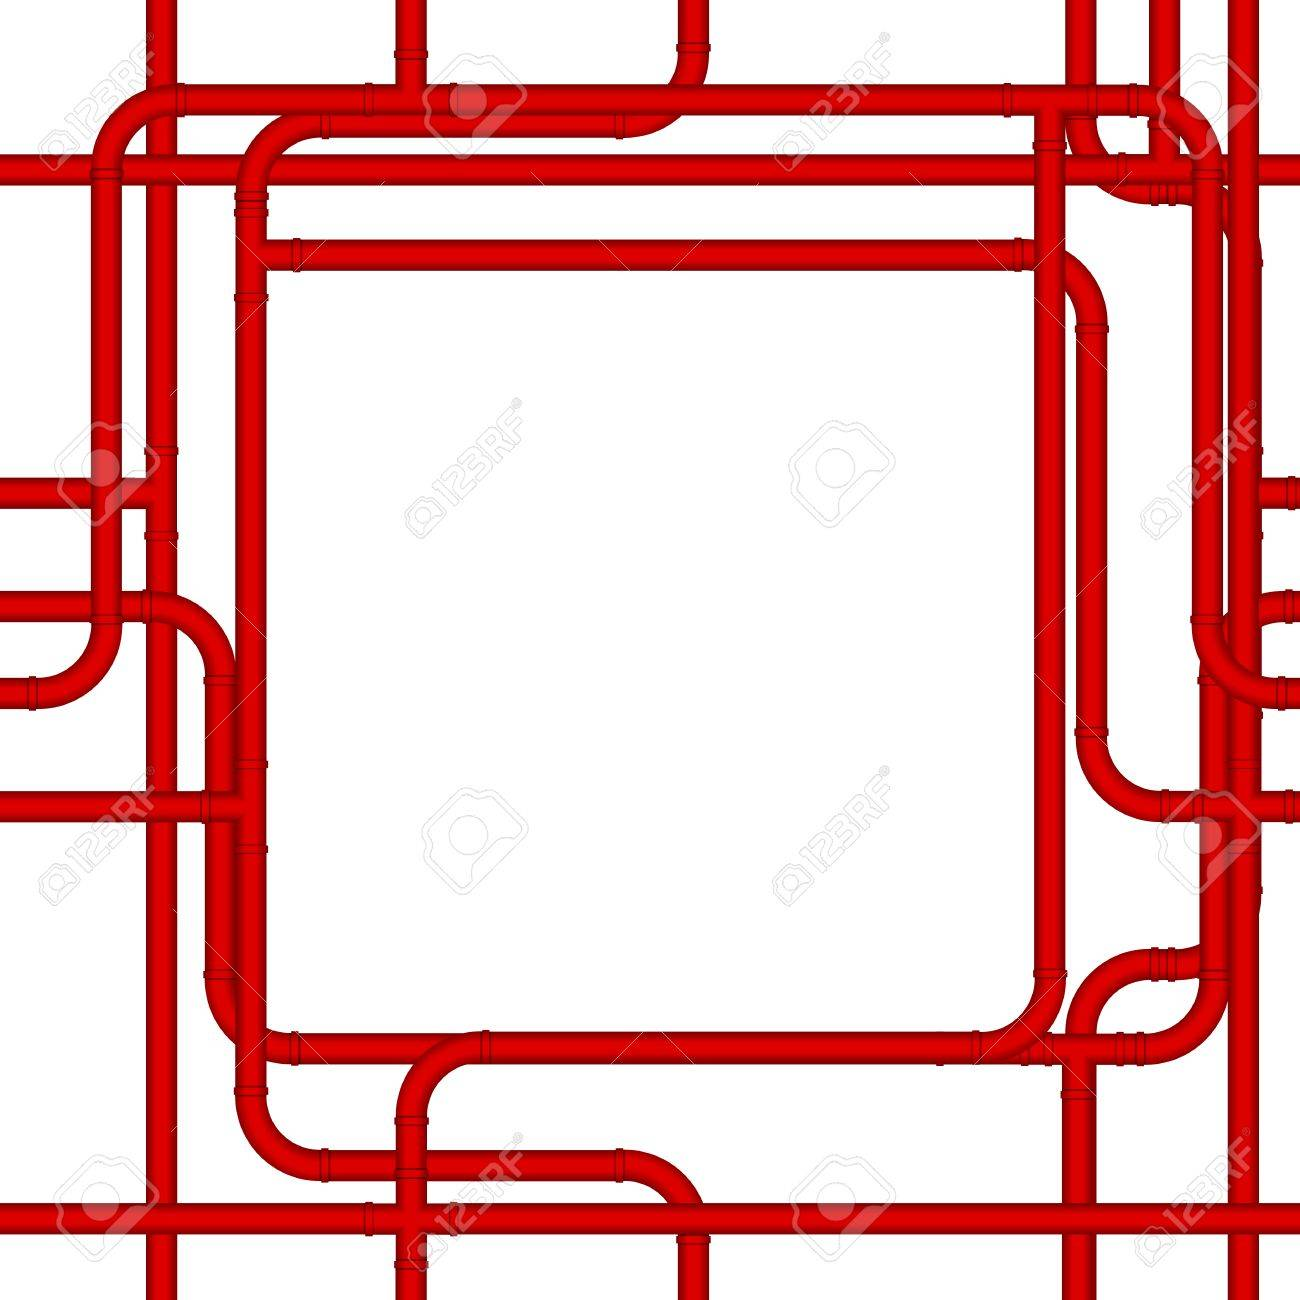 pipe frame stock vector 7050950